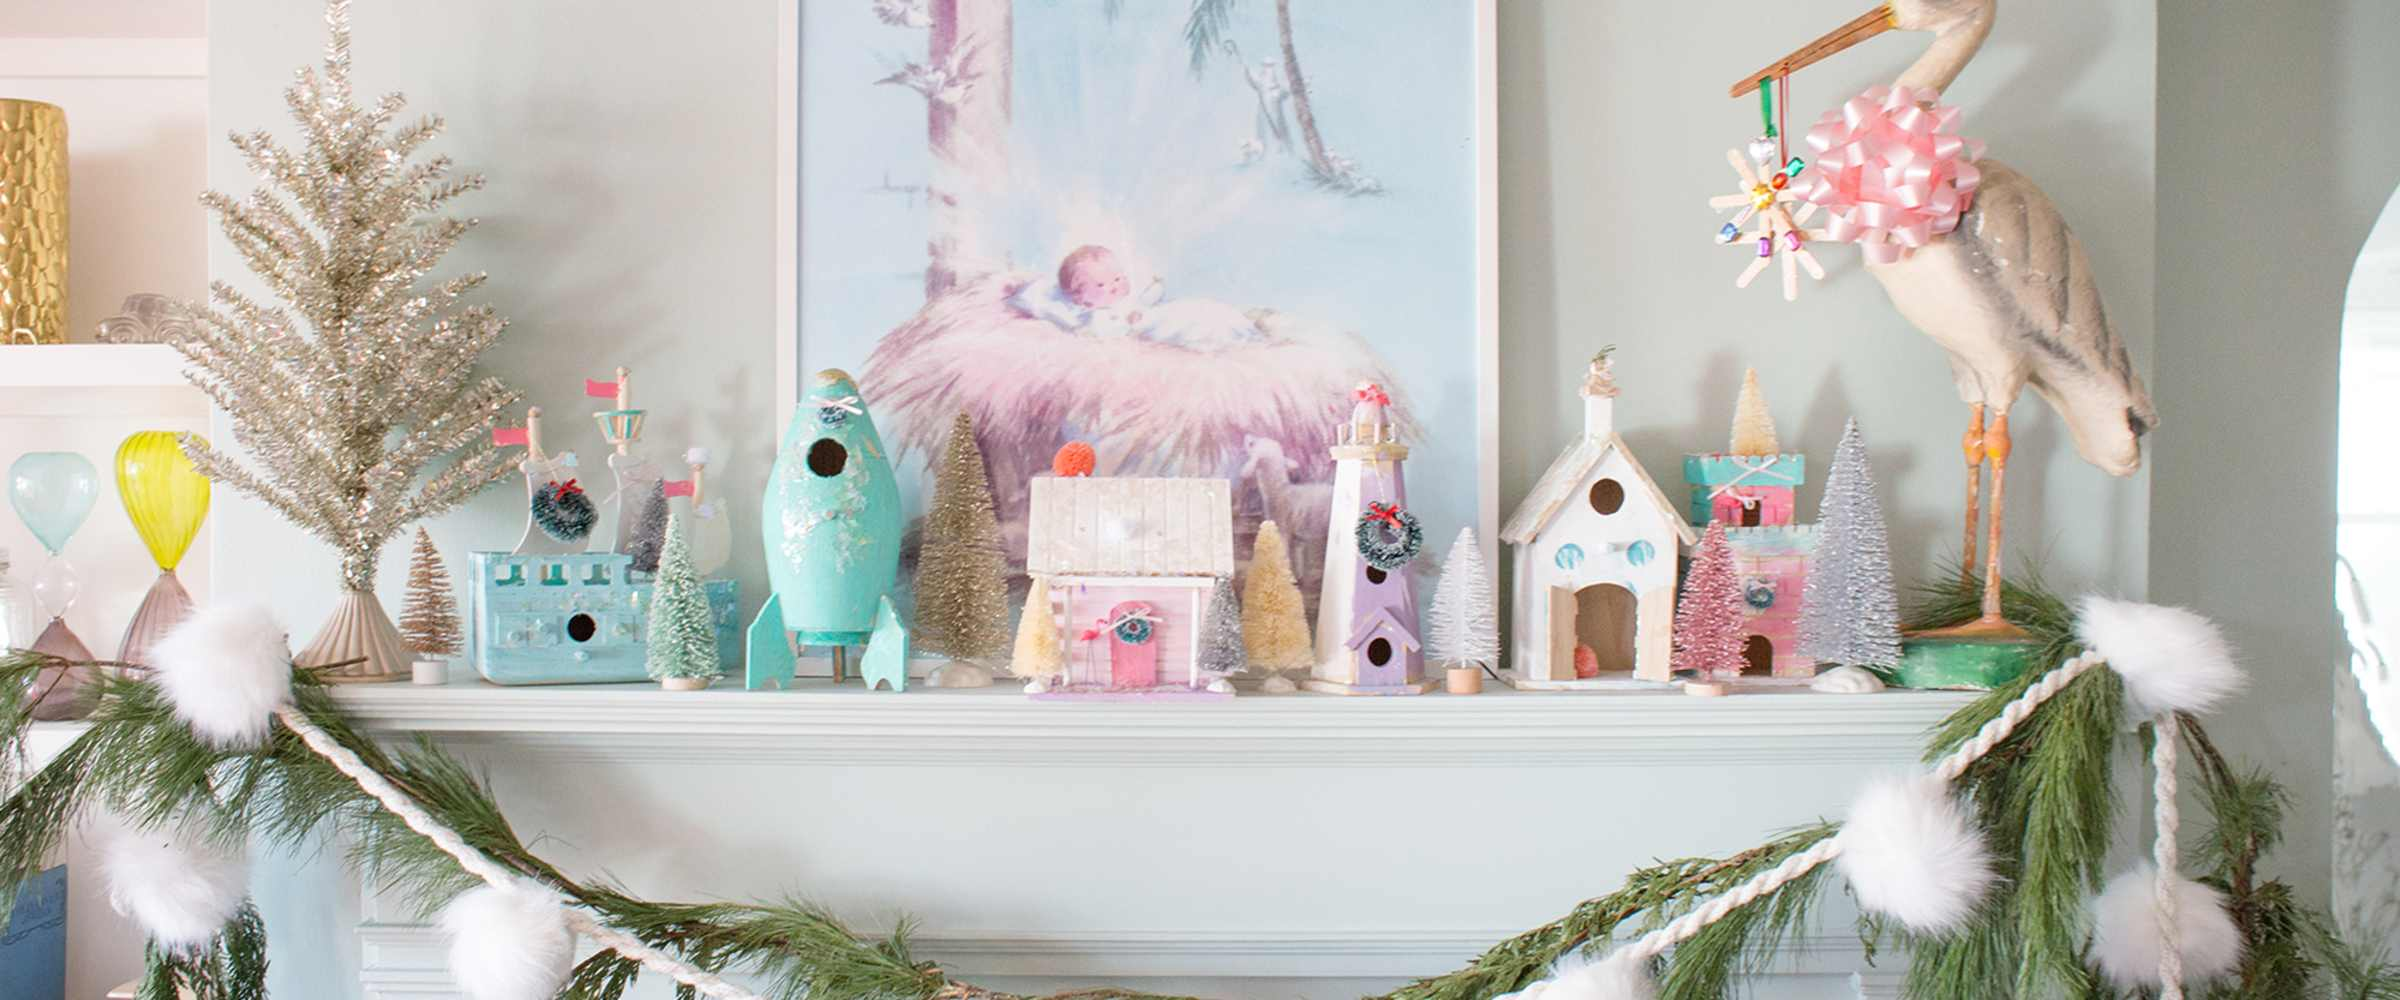 Vintage Christmas Art for over the Mantel